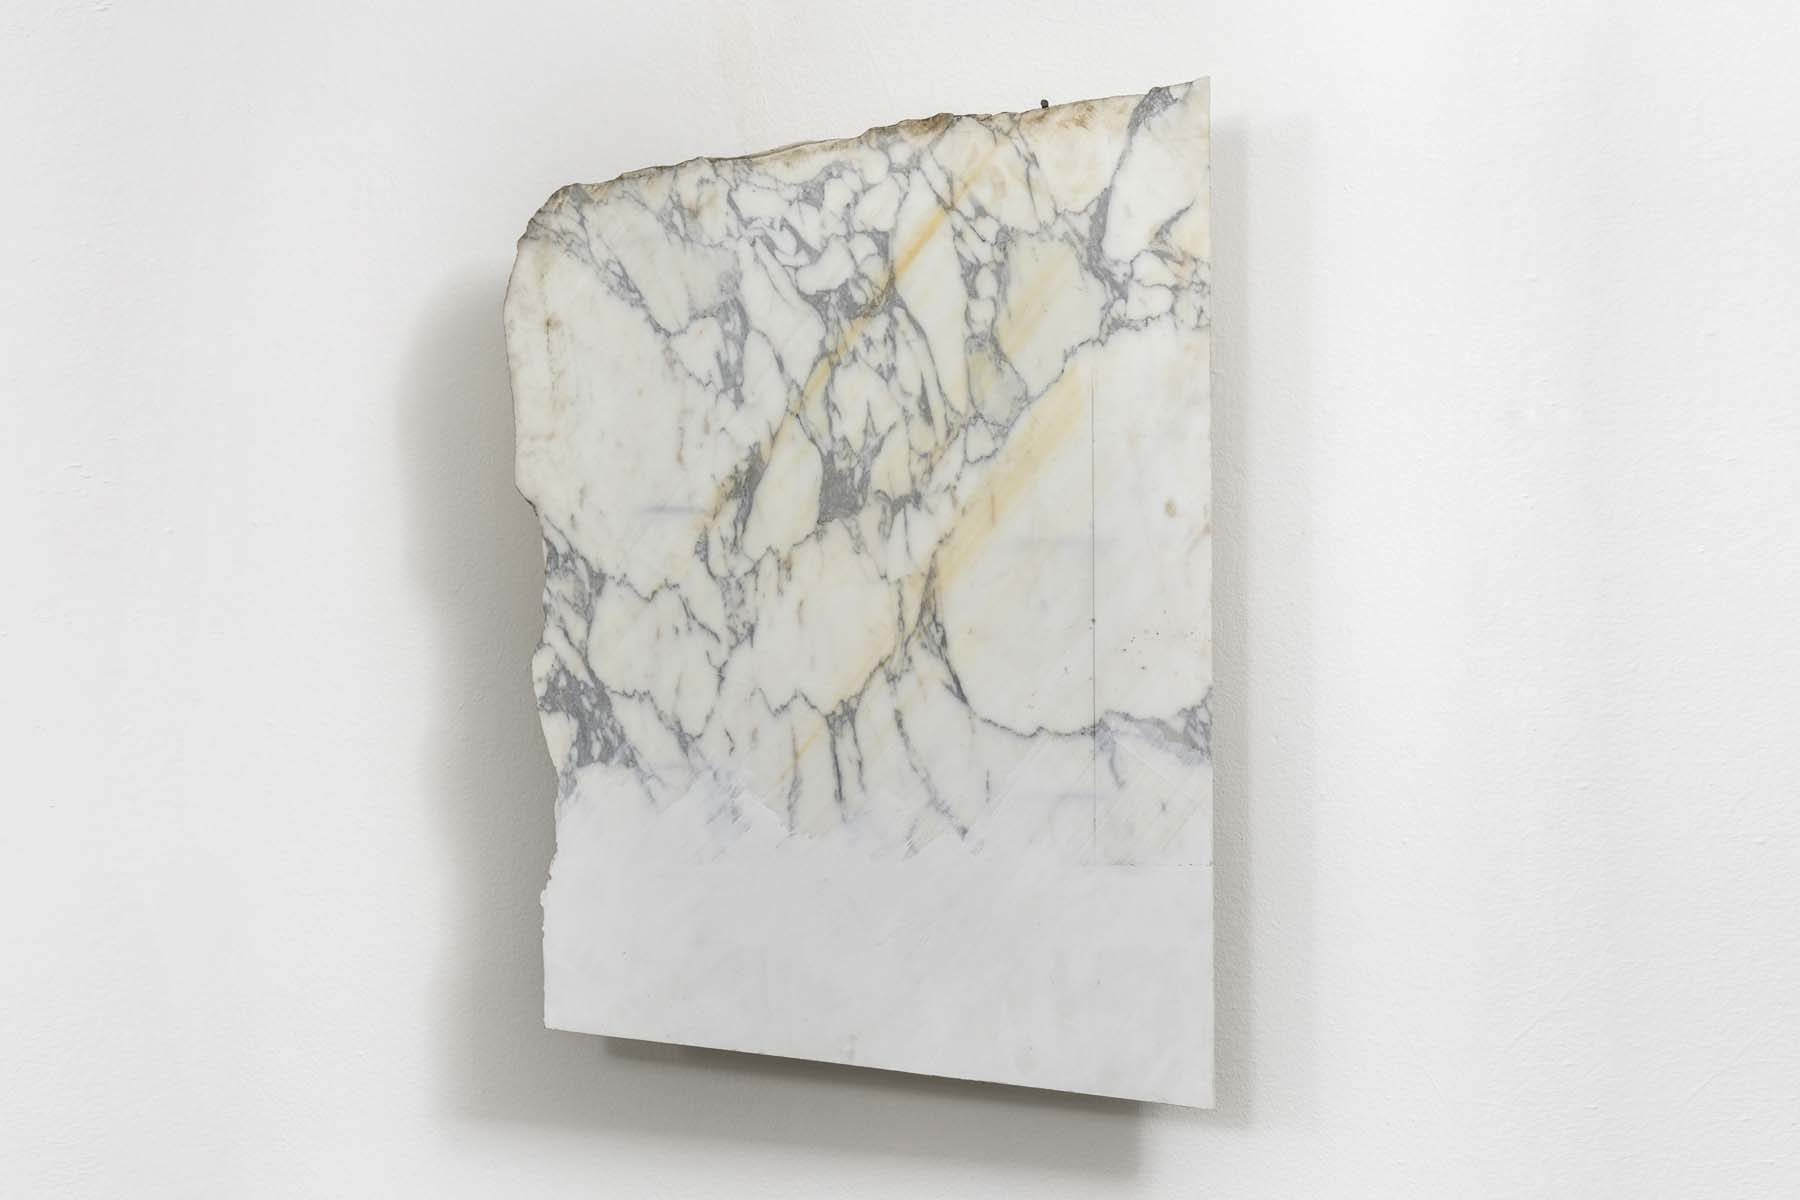 F. Prevedello, Untitled (63), 2011, marble, gypsum, iron, cm 98 x 67 x 17, courtesy of the artist and Cardelli & Fontana, ph. A. Ruzzier